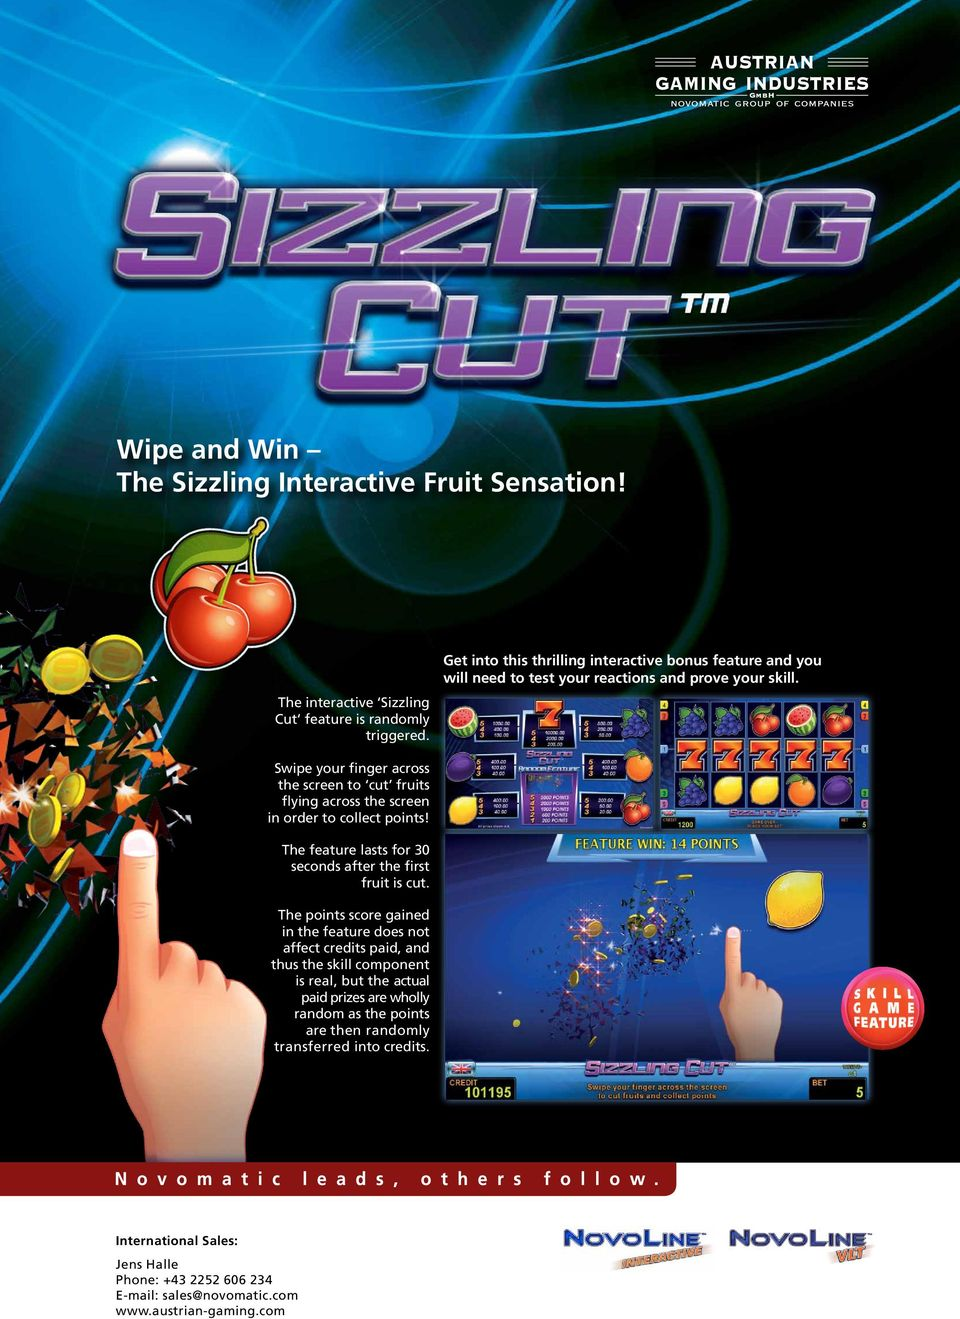 Swipe your finger across the screen to cut fruits flying across the screen in order to collect points! The feature lasts for 30 seconds after the first fruit is cut.